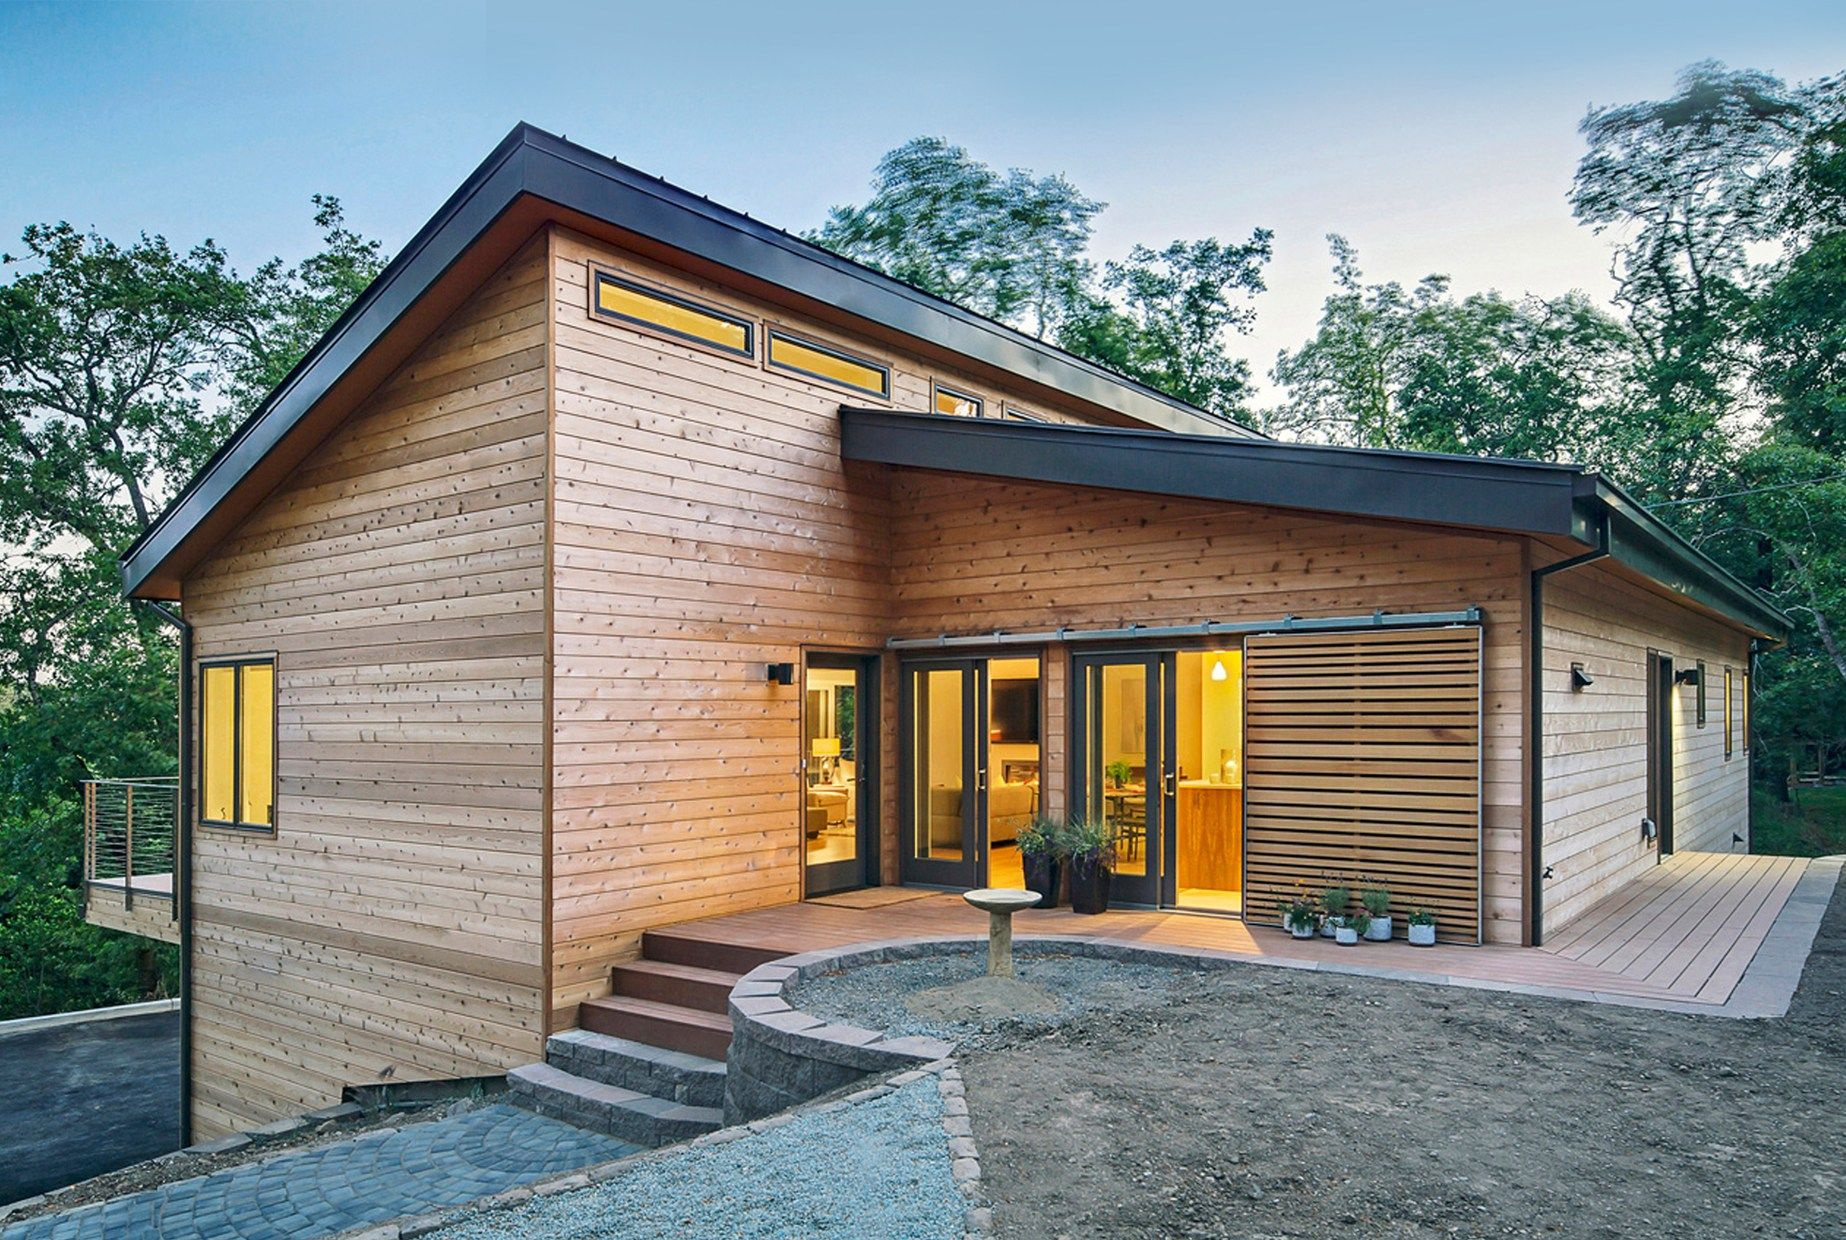 Twelve Steps To Affordable Zero Energy Home Construction And Design Zero Energy Project Modern House Exterior Generator House Zero Energy House